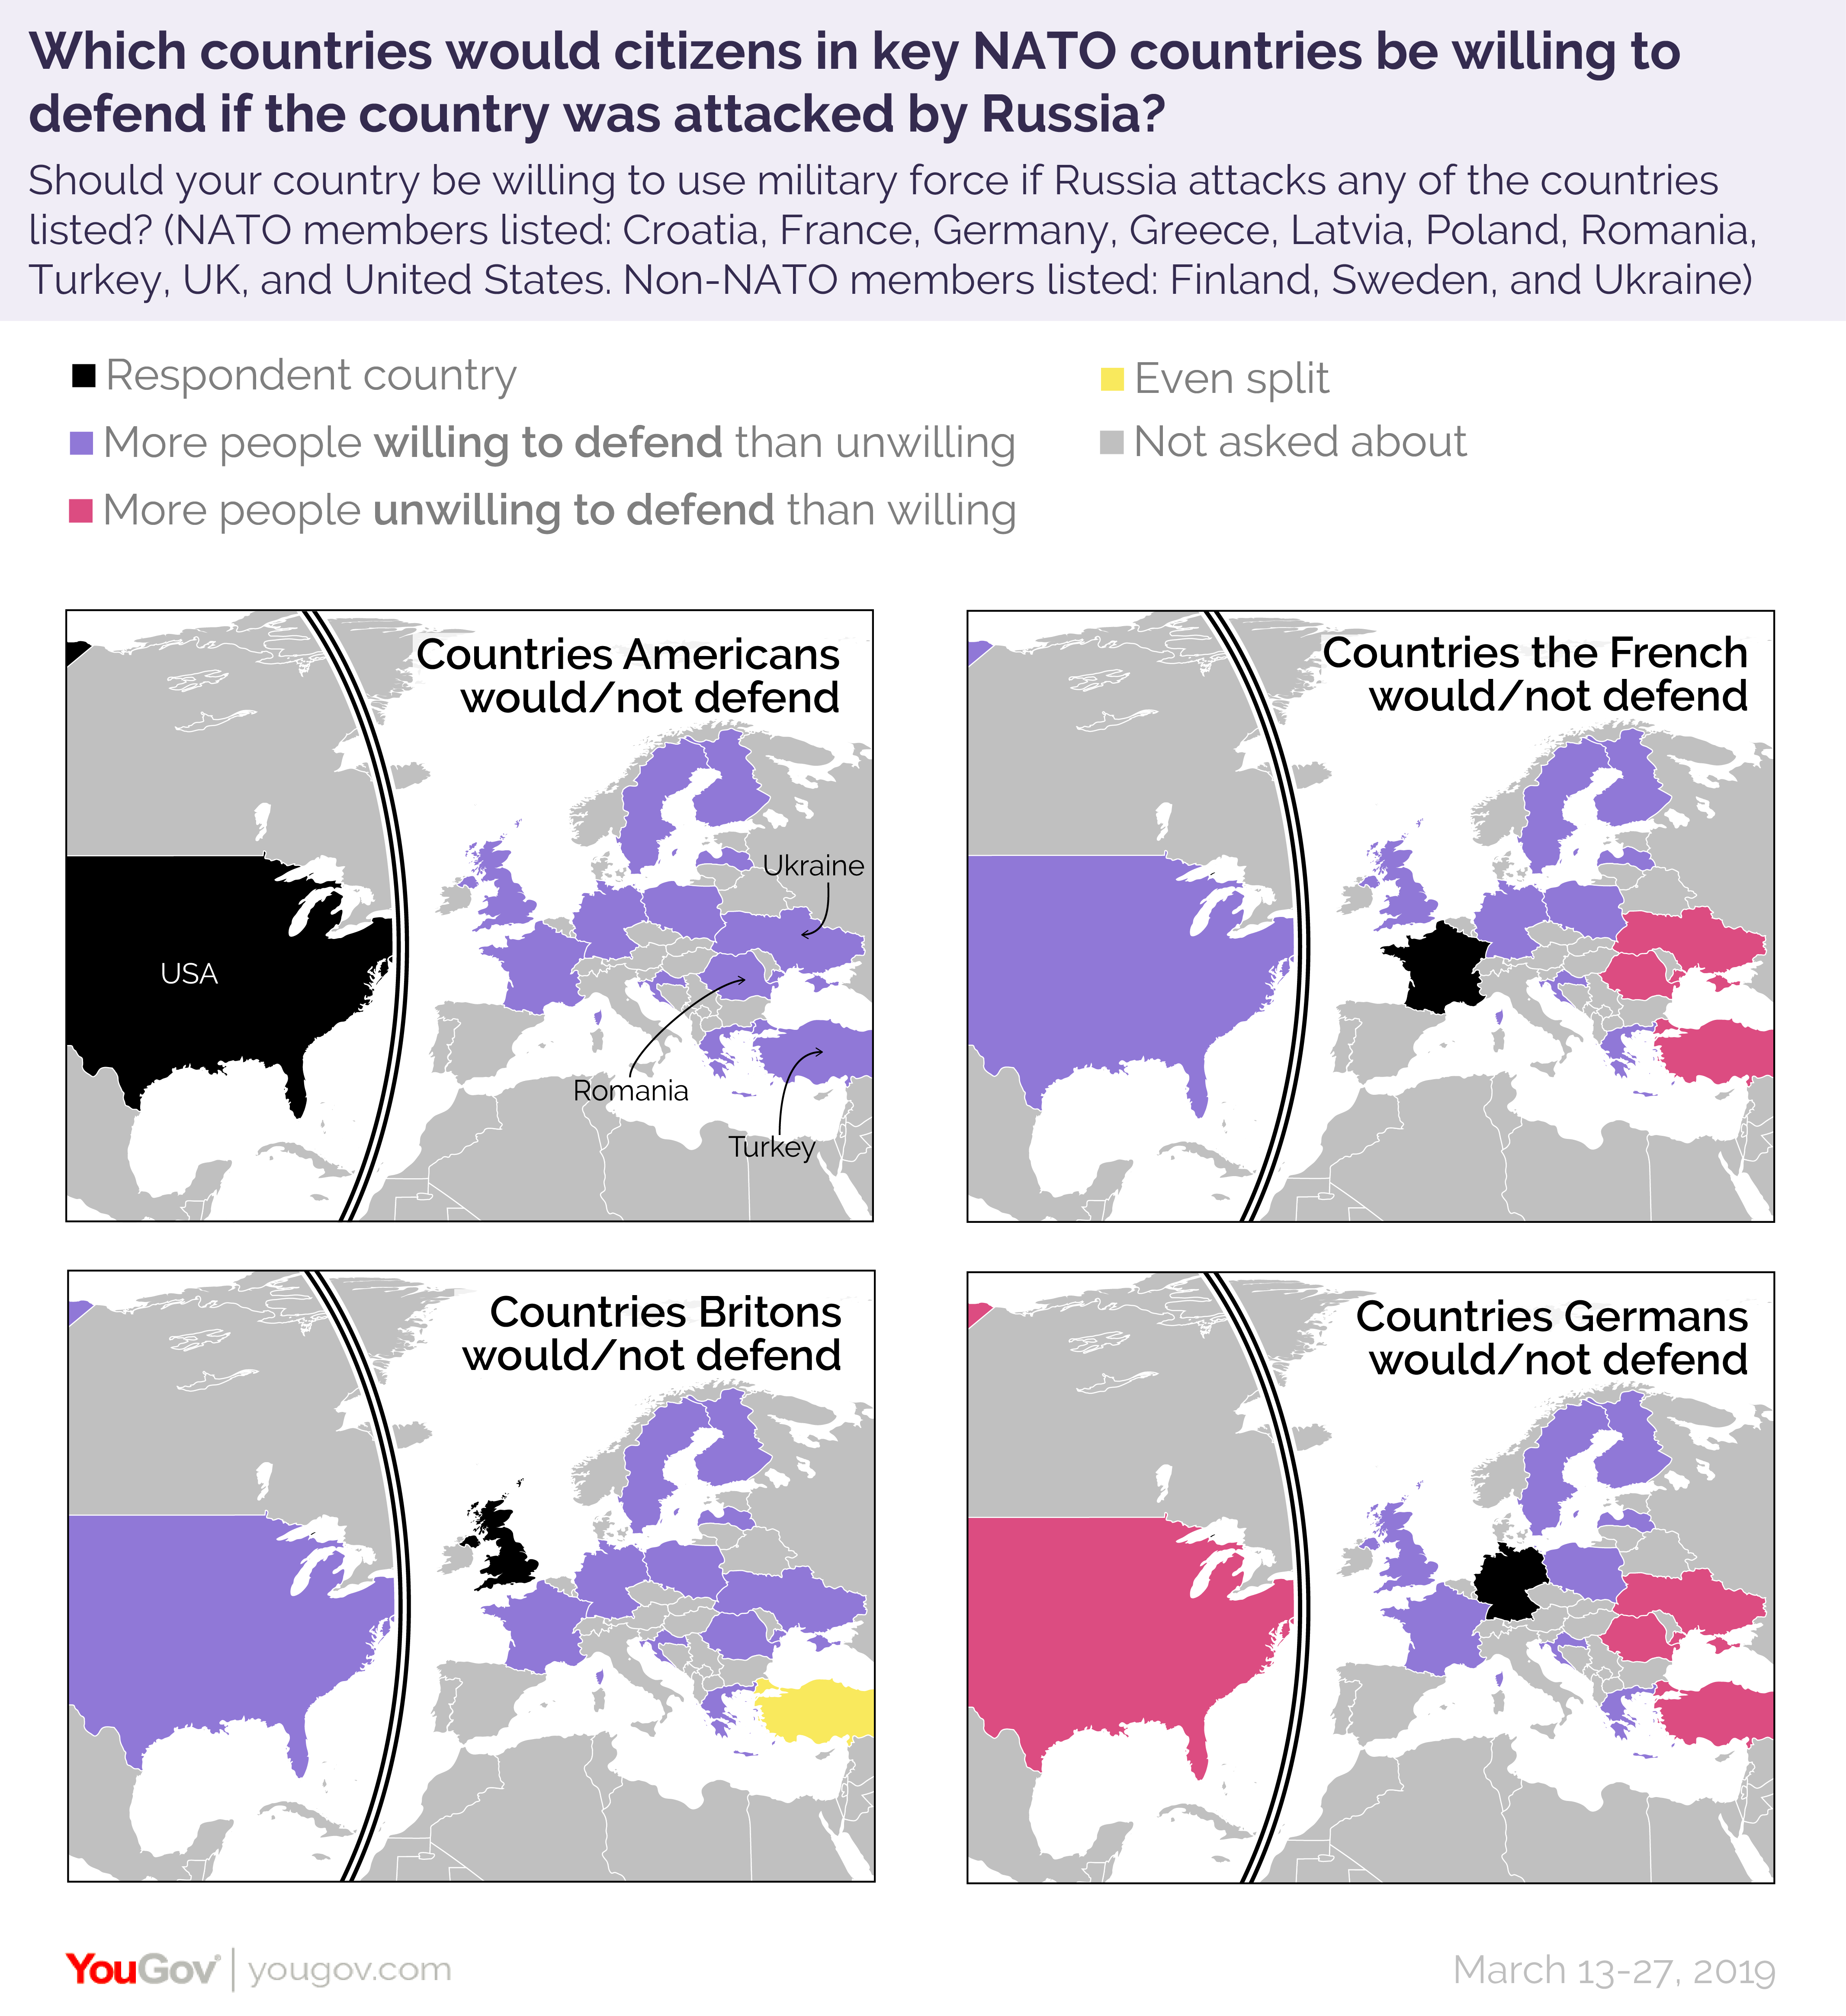 Which countries would citizens in key NATO countries be willing to defend